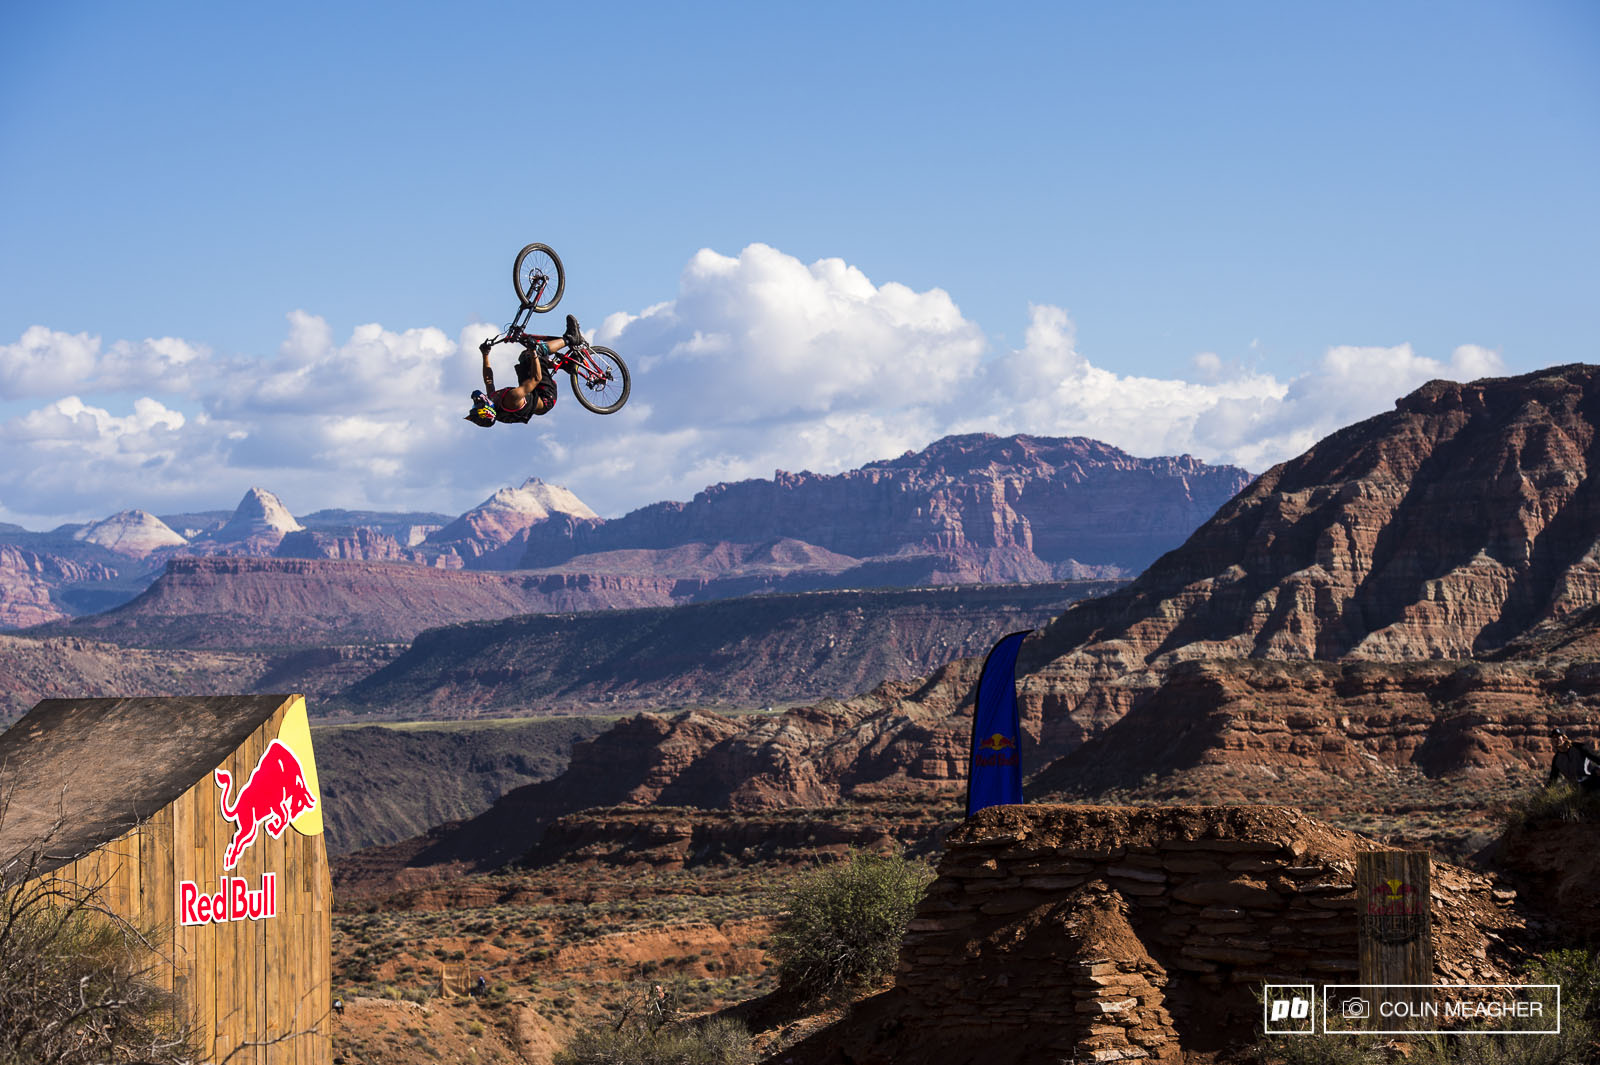 Szymon Godziek... the level has definitely turned up since the last Rampage casually backflipping the canyon gap was the norm.